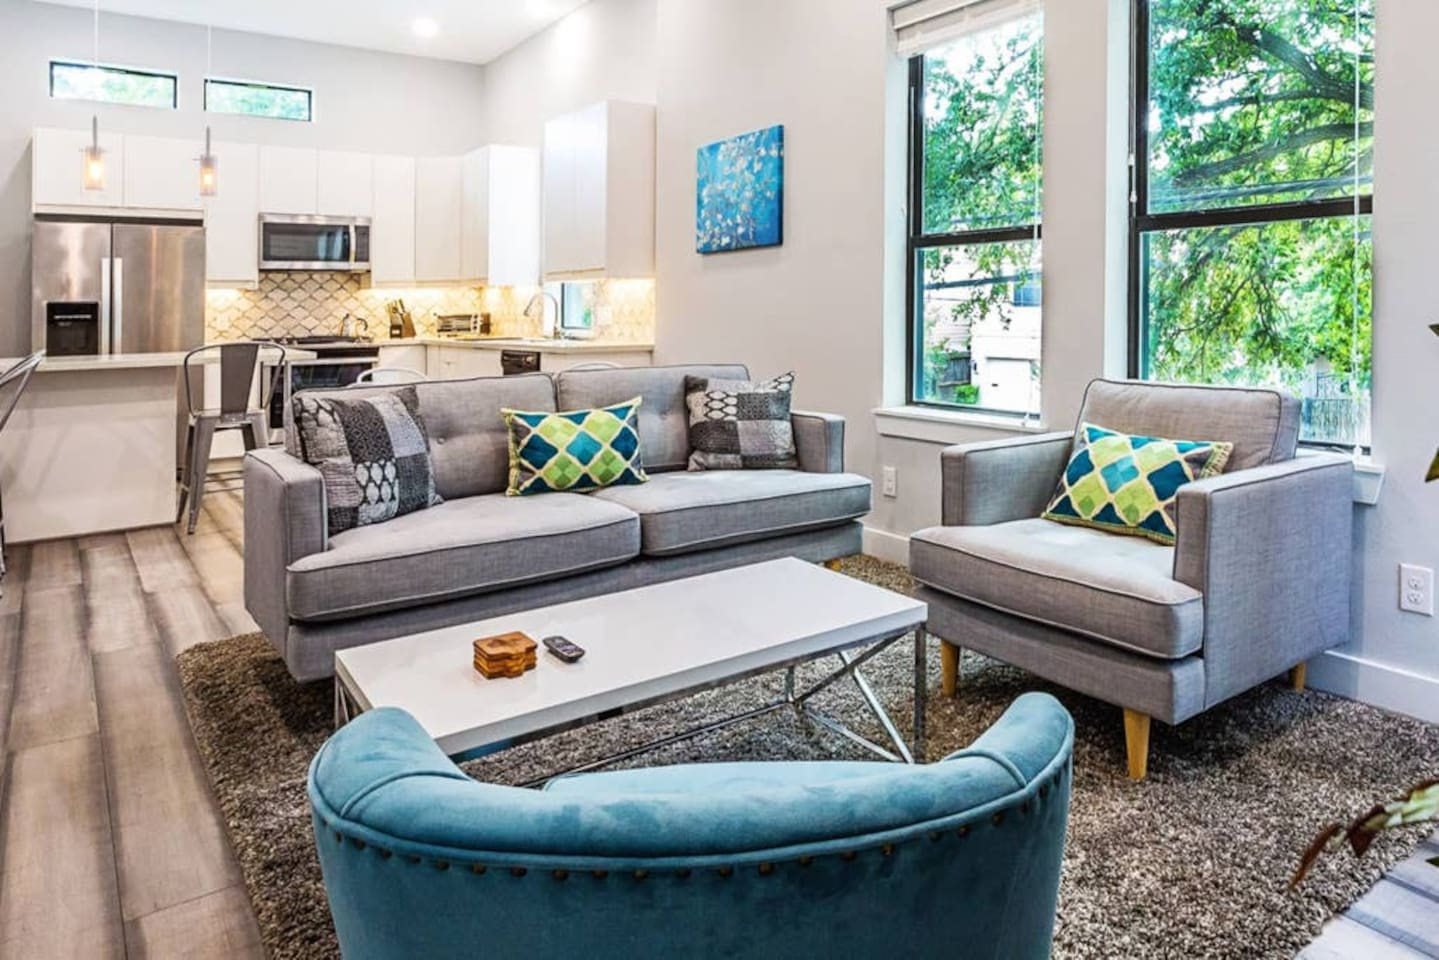 Nice living area to eat and hangout